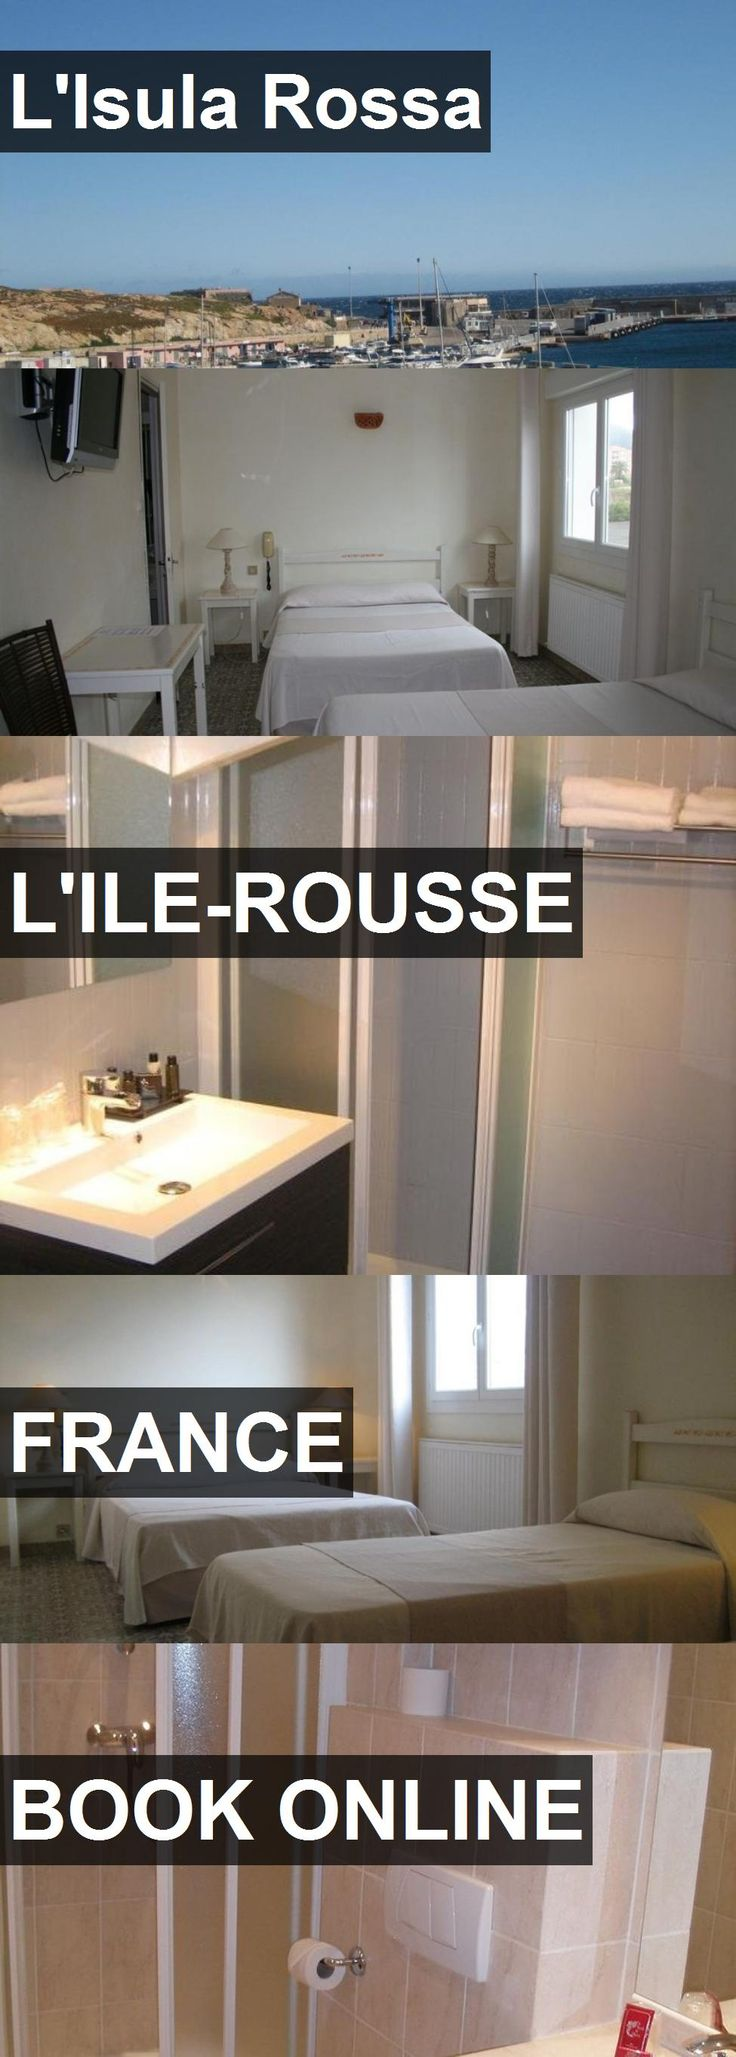 Hotel L'Isula Rossa in L'Ile-Rousse, France. For more information, photos, reviews and best prices please follow the link. #France #L'Ile-Rousse #L'IsulaRossa #hotel #travel #vacation